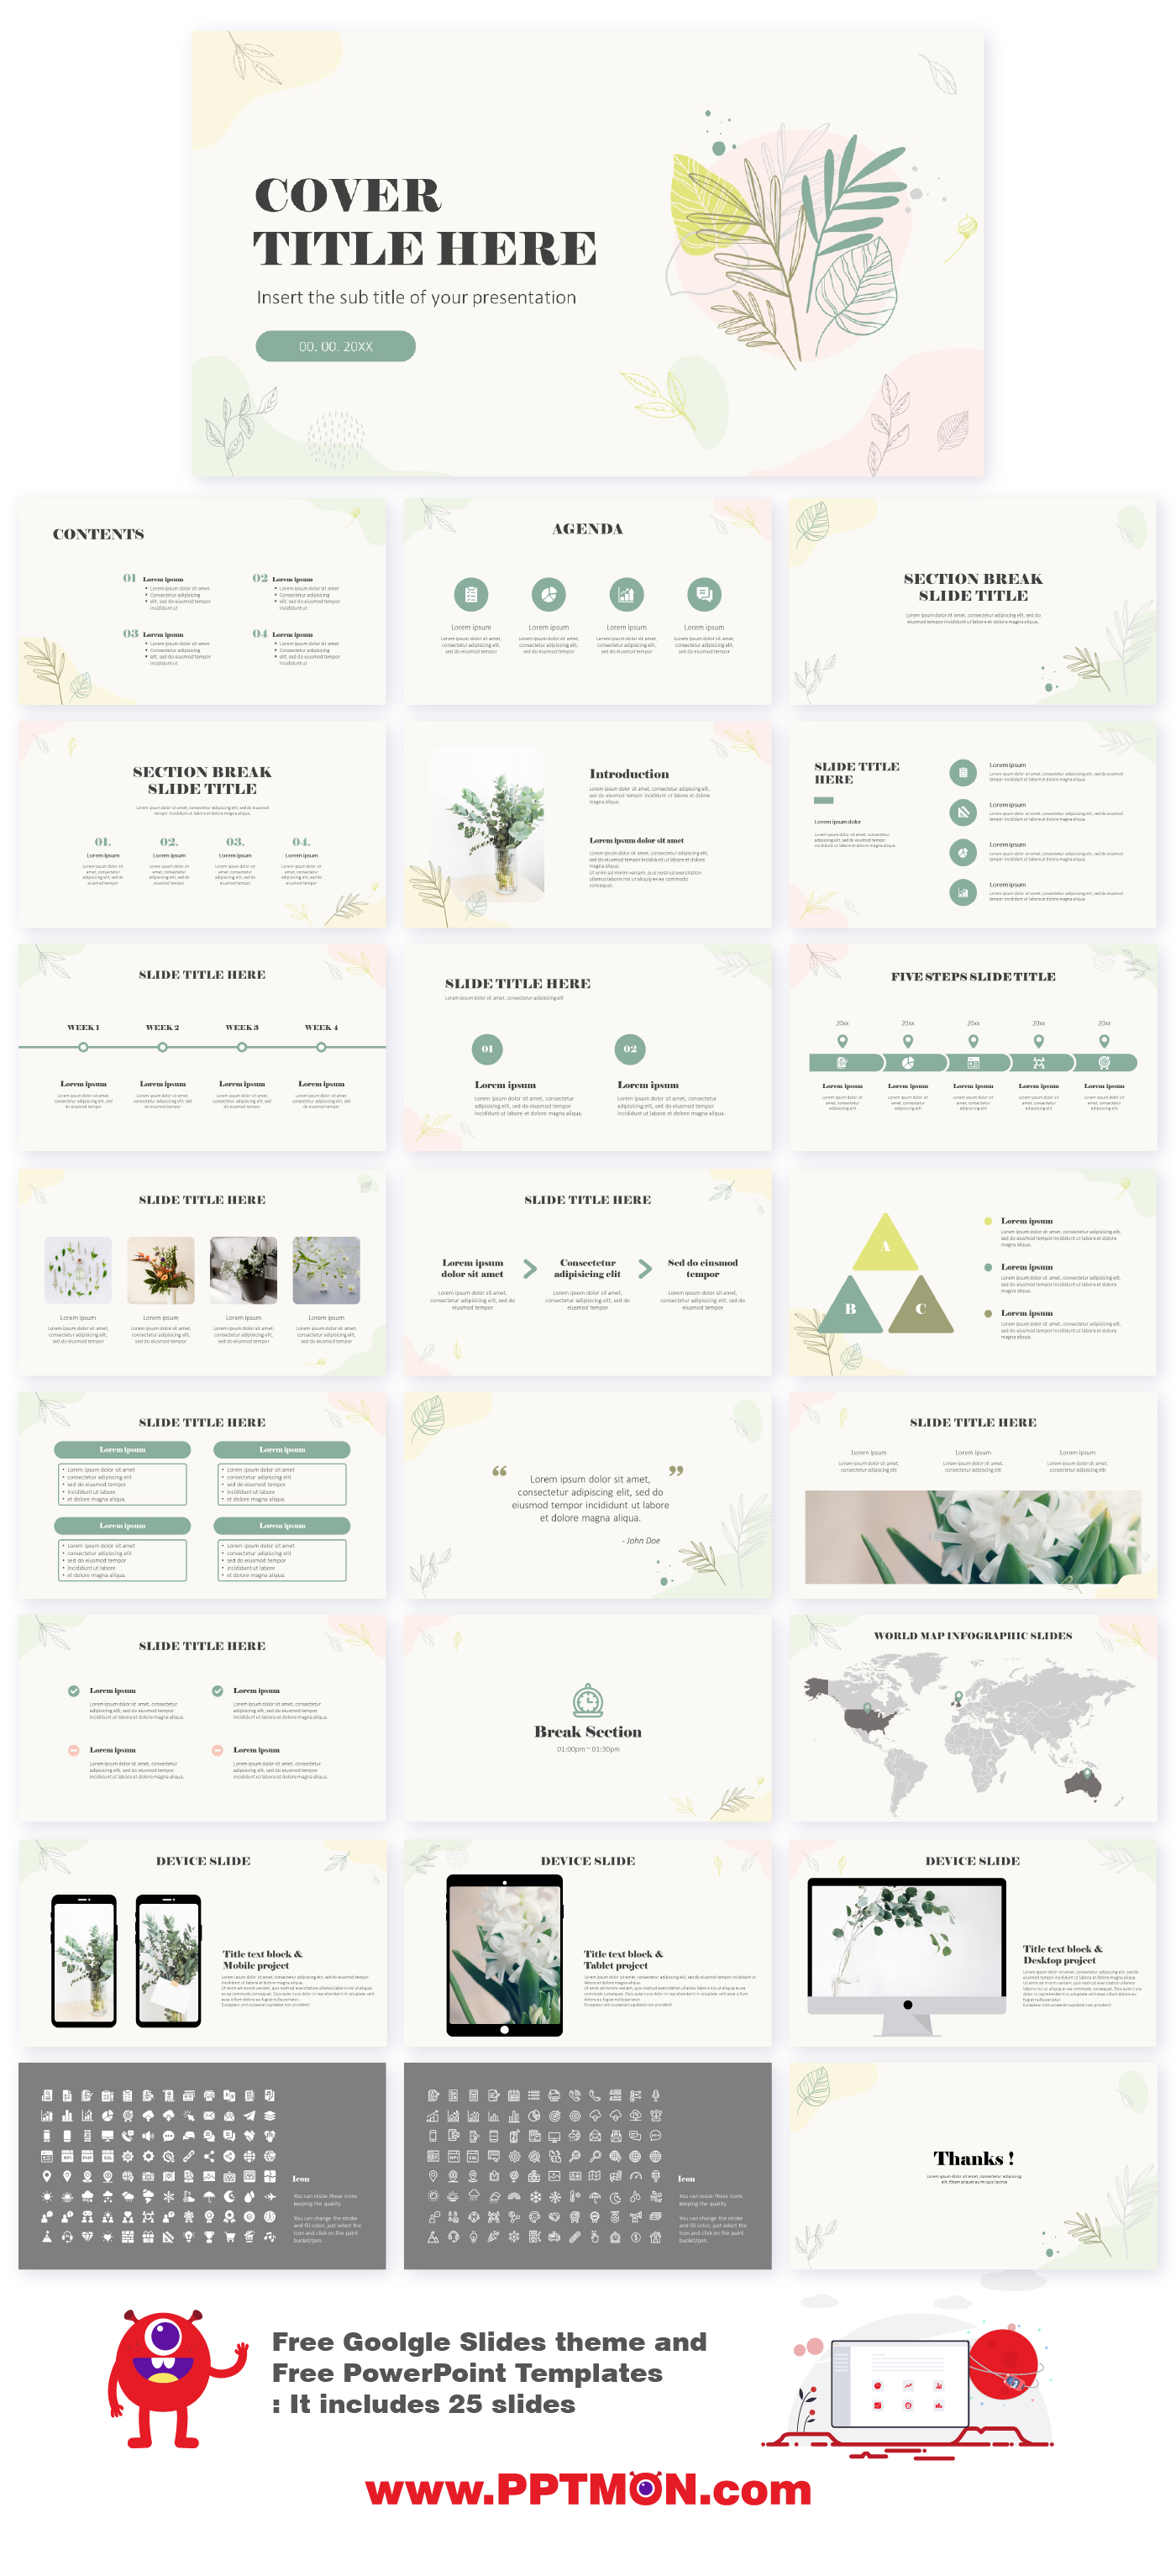 Free Google Slides Themes And Powerpoint Templates For Organic Hand Drawn B Free Powerpoint Templates Download Powerpoint Templates Powerpoint Design Templates